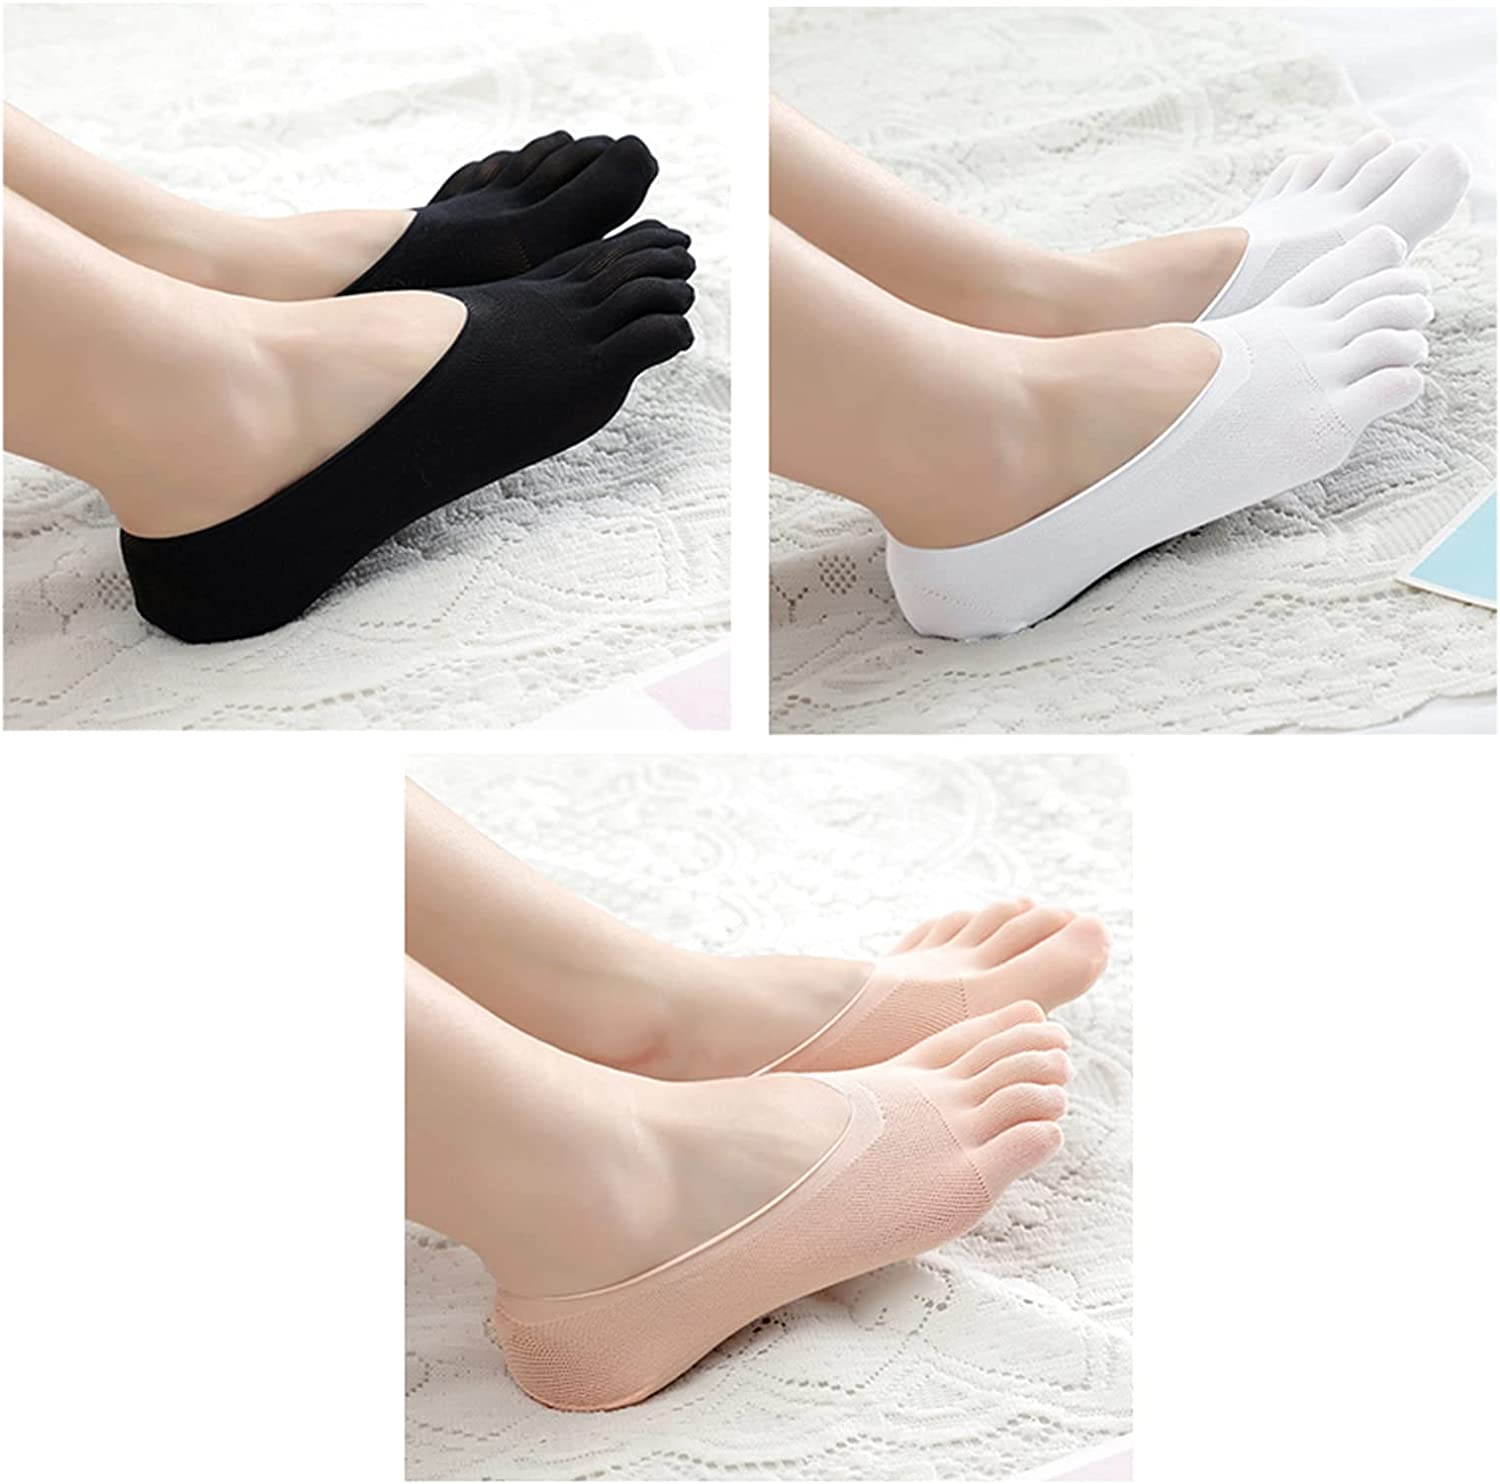 CHENGCHAO Sock Women Summer Five-Finger Socks Female Ultrathin Sock Funny Toe Invisible Silicone Anti-Skid Anti-Friction Movement (Color : White Black Pink, Size : 1 Pair)